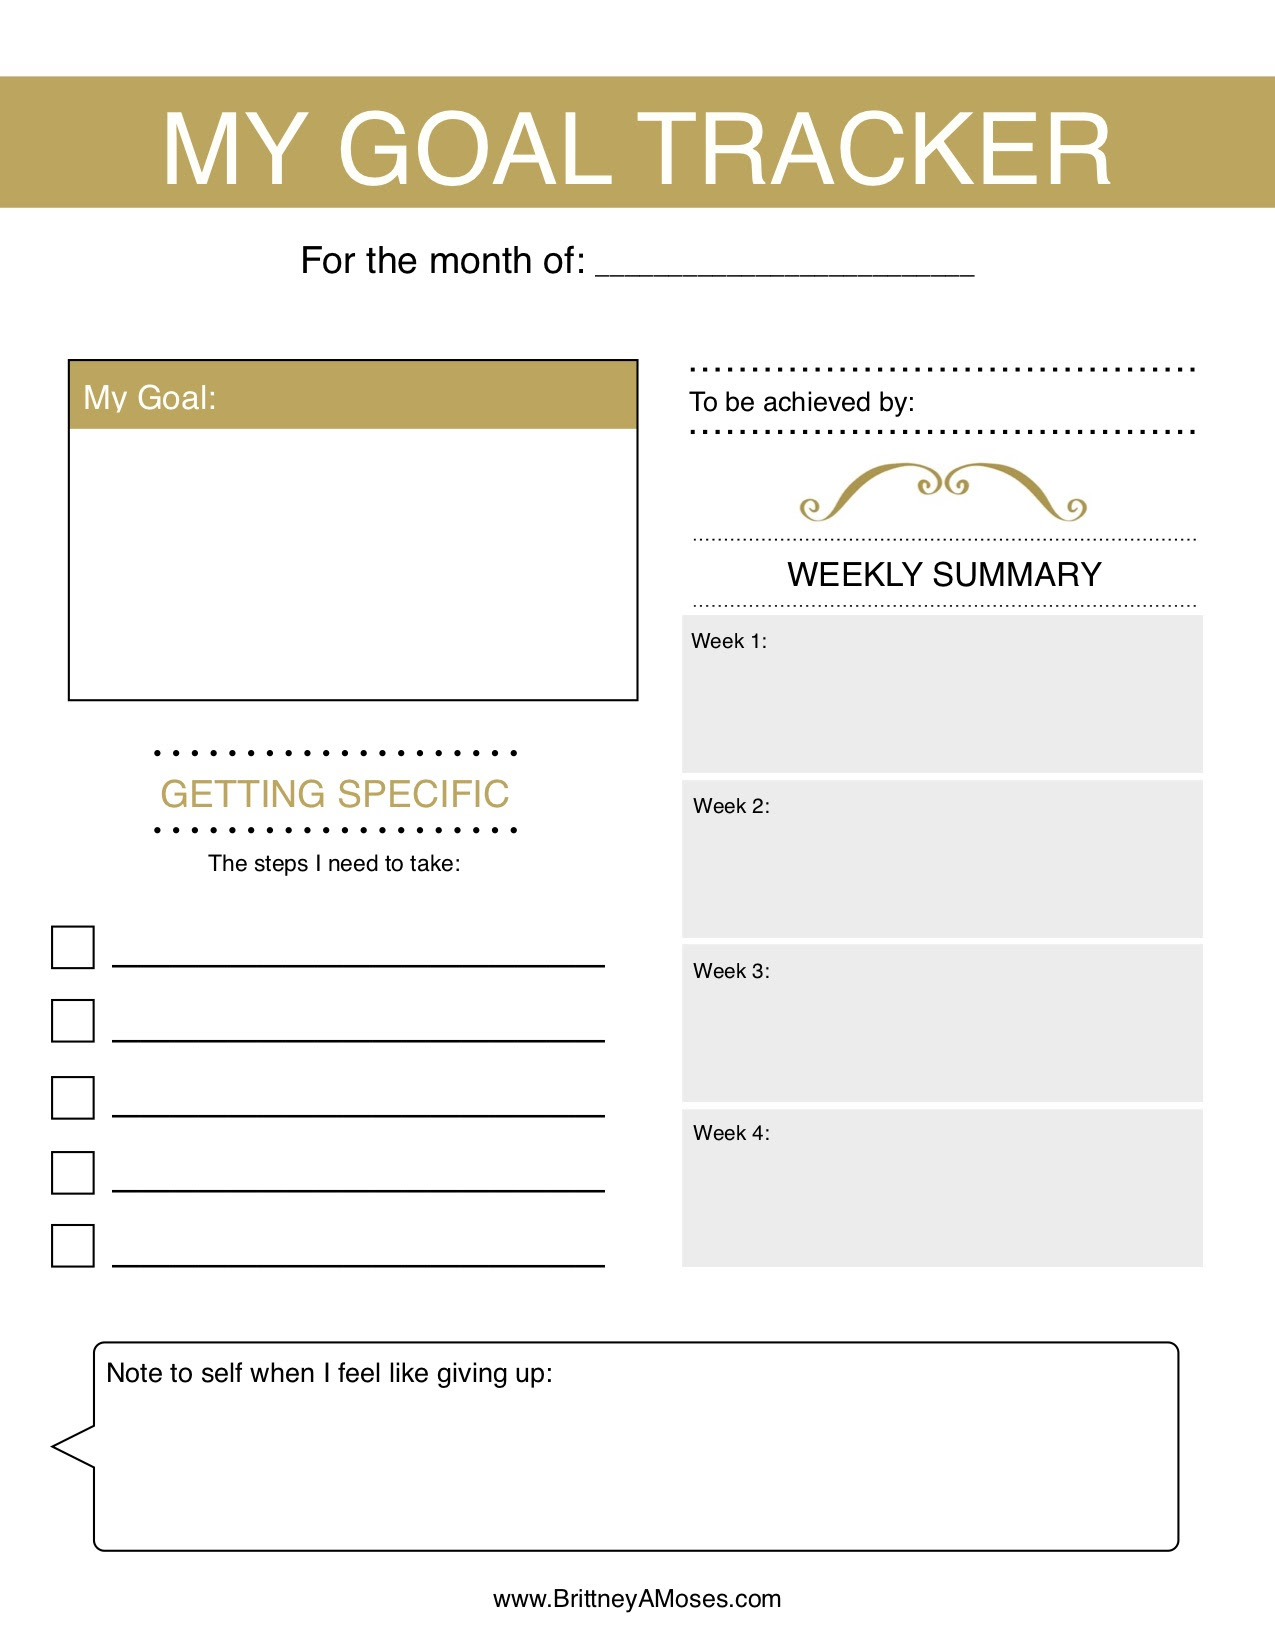 Printable: Monthly Goal Tracker - Brittney Moses